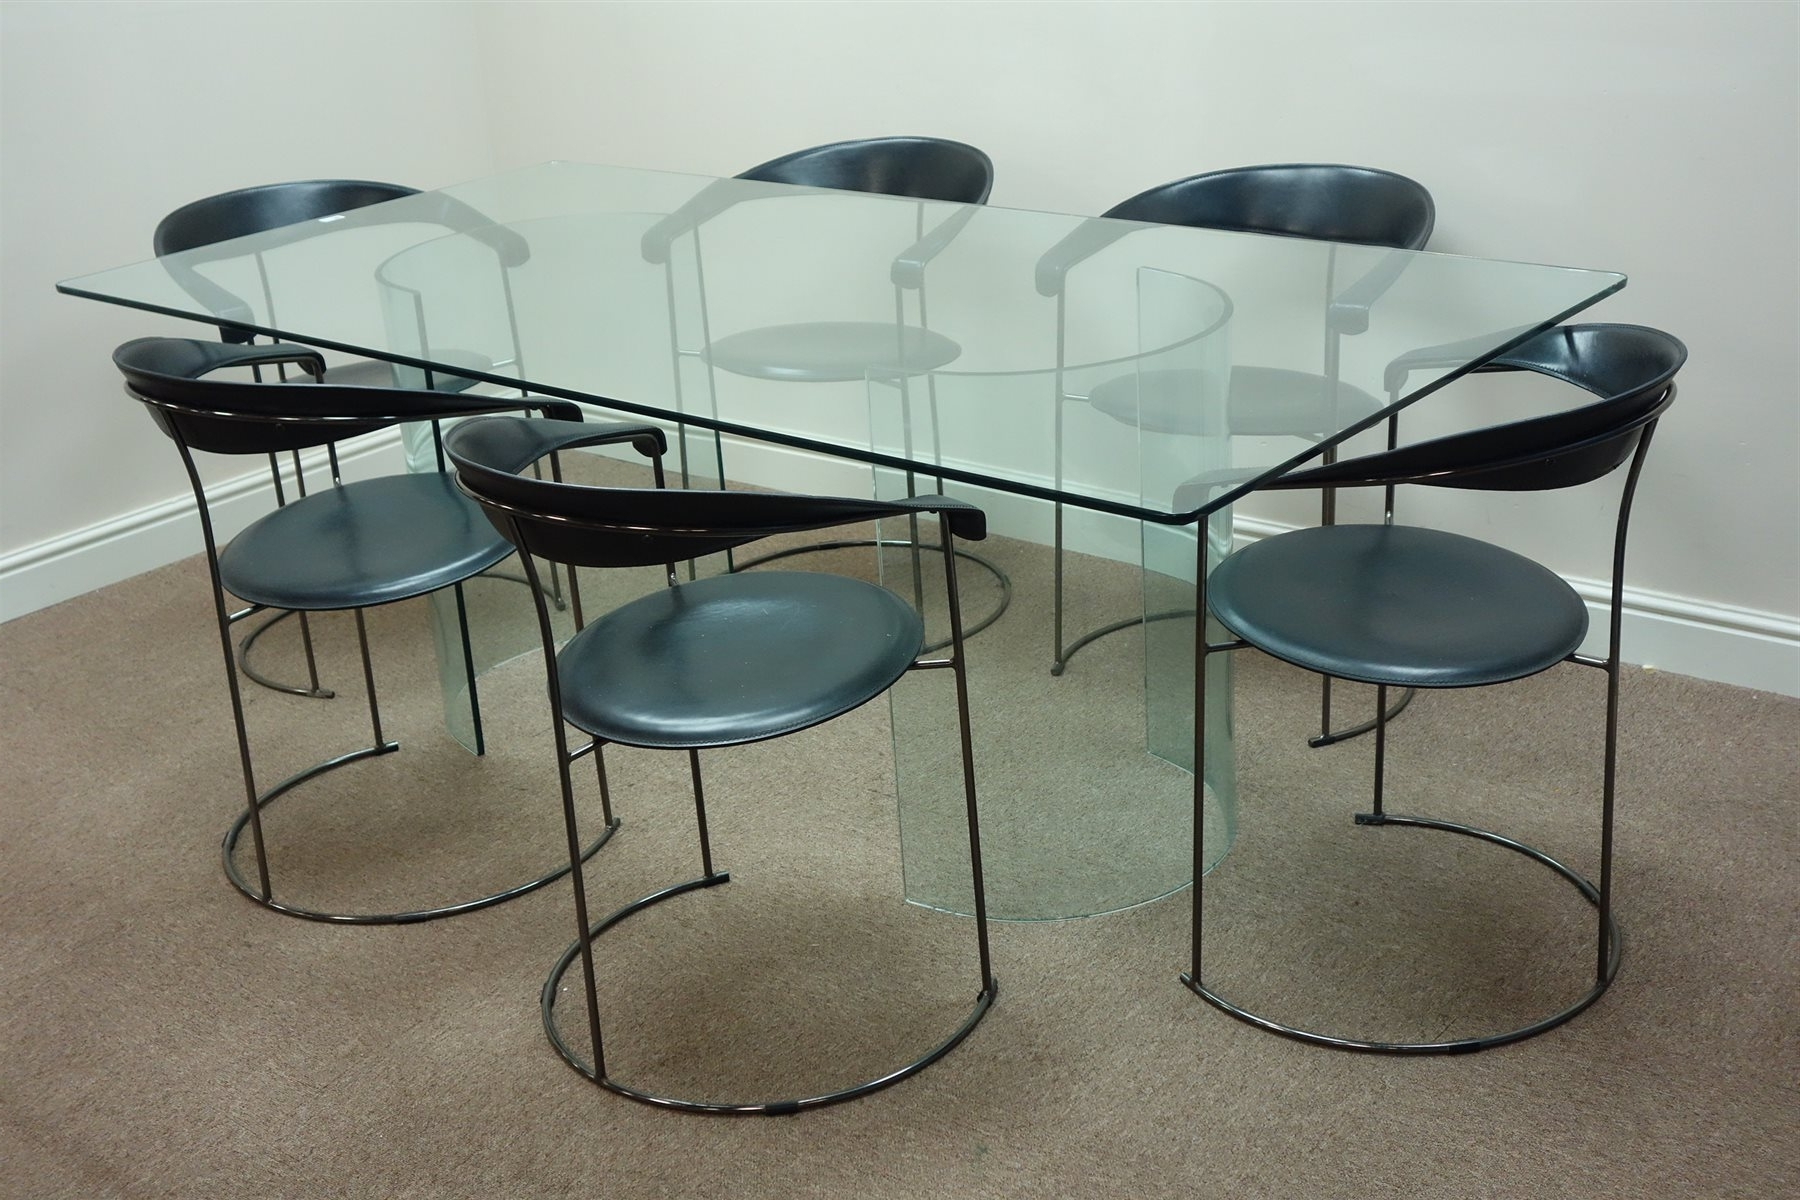 Most Popular Curved Glass Dining Tables Within 1960S Rectangular Glass Dining Table On Two Curved Glass Pedestals (View 18 of 25)